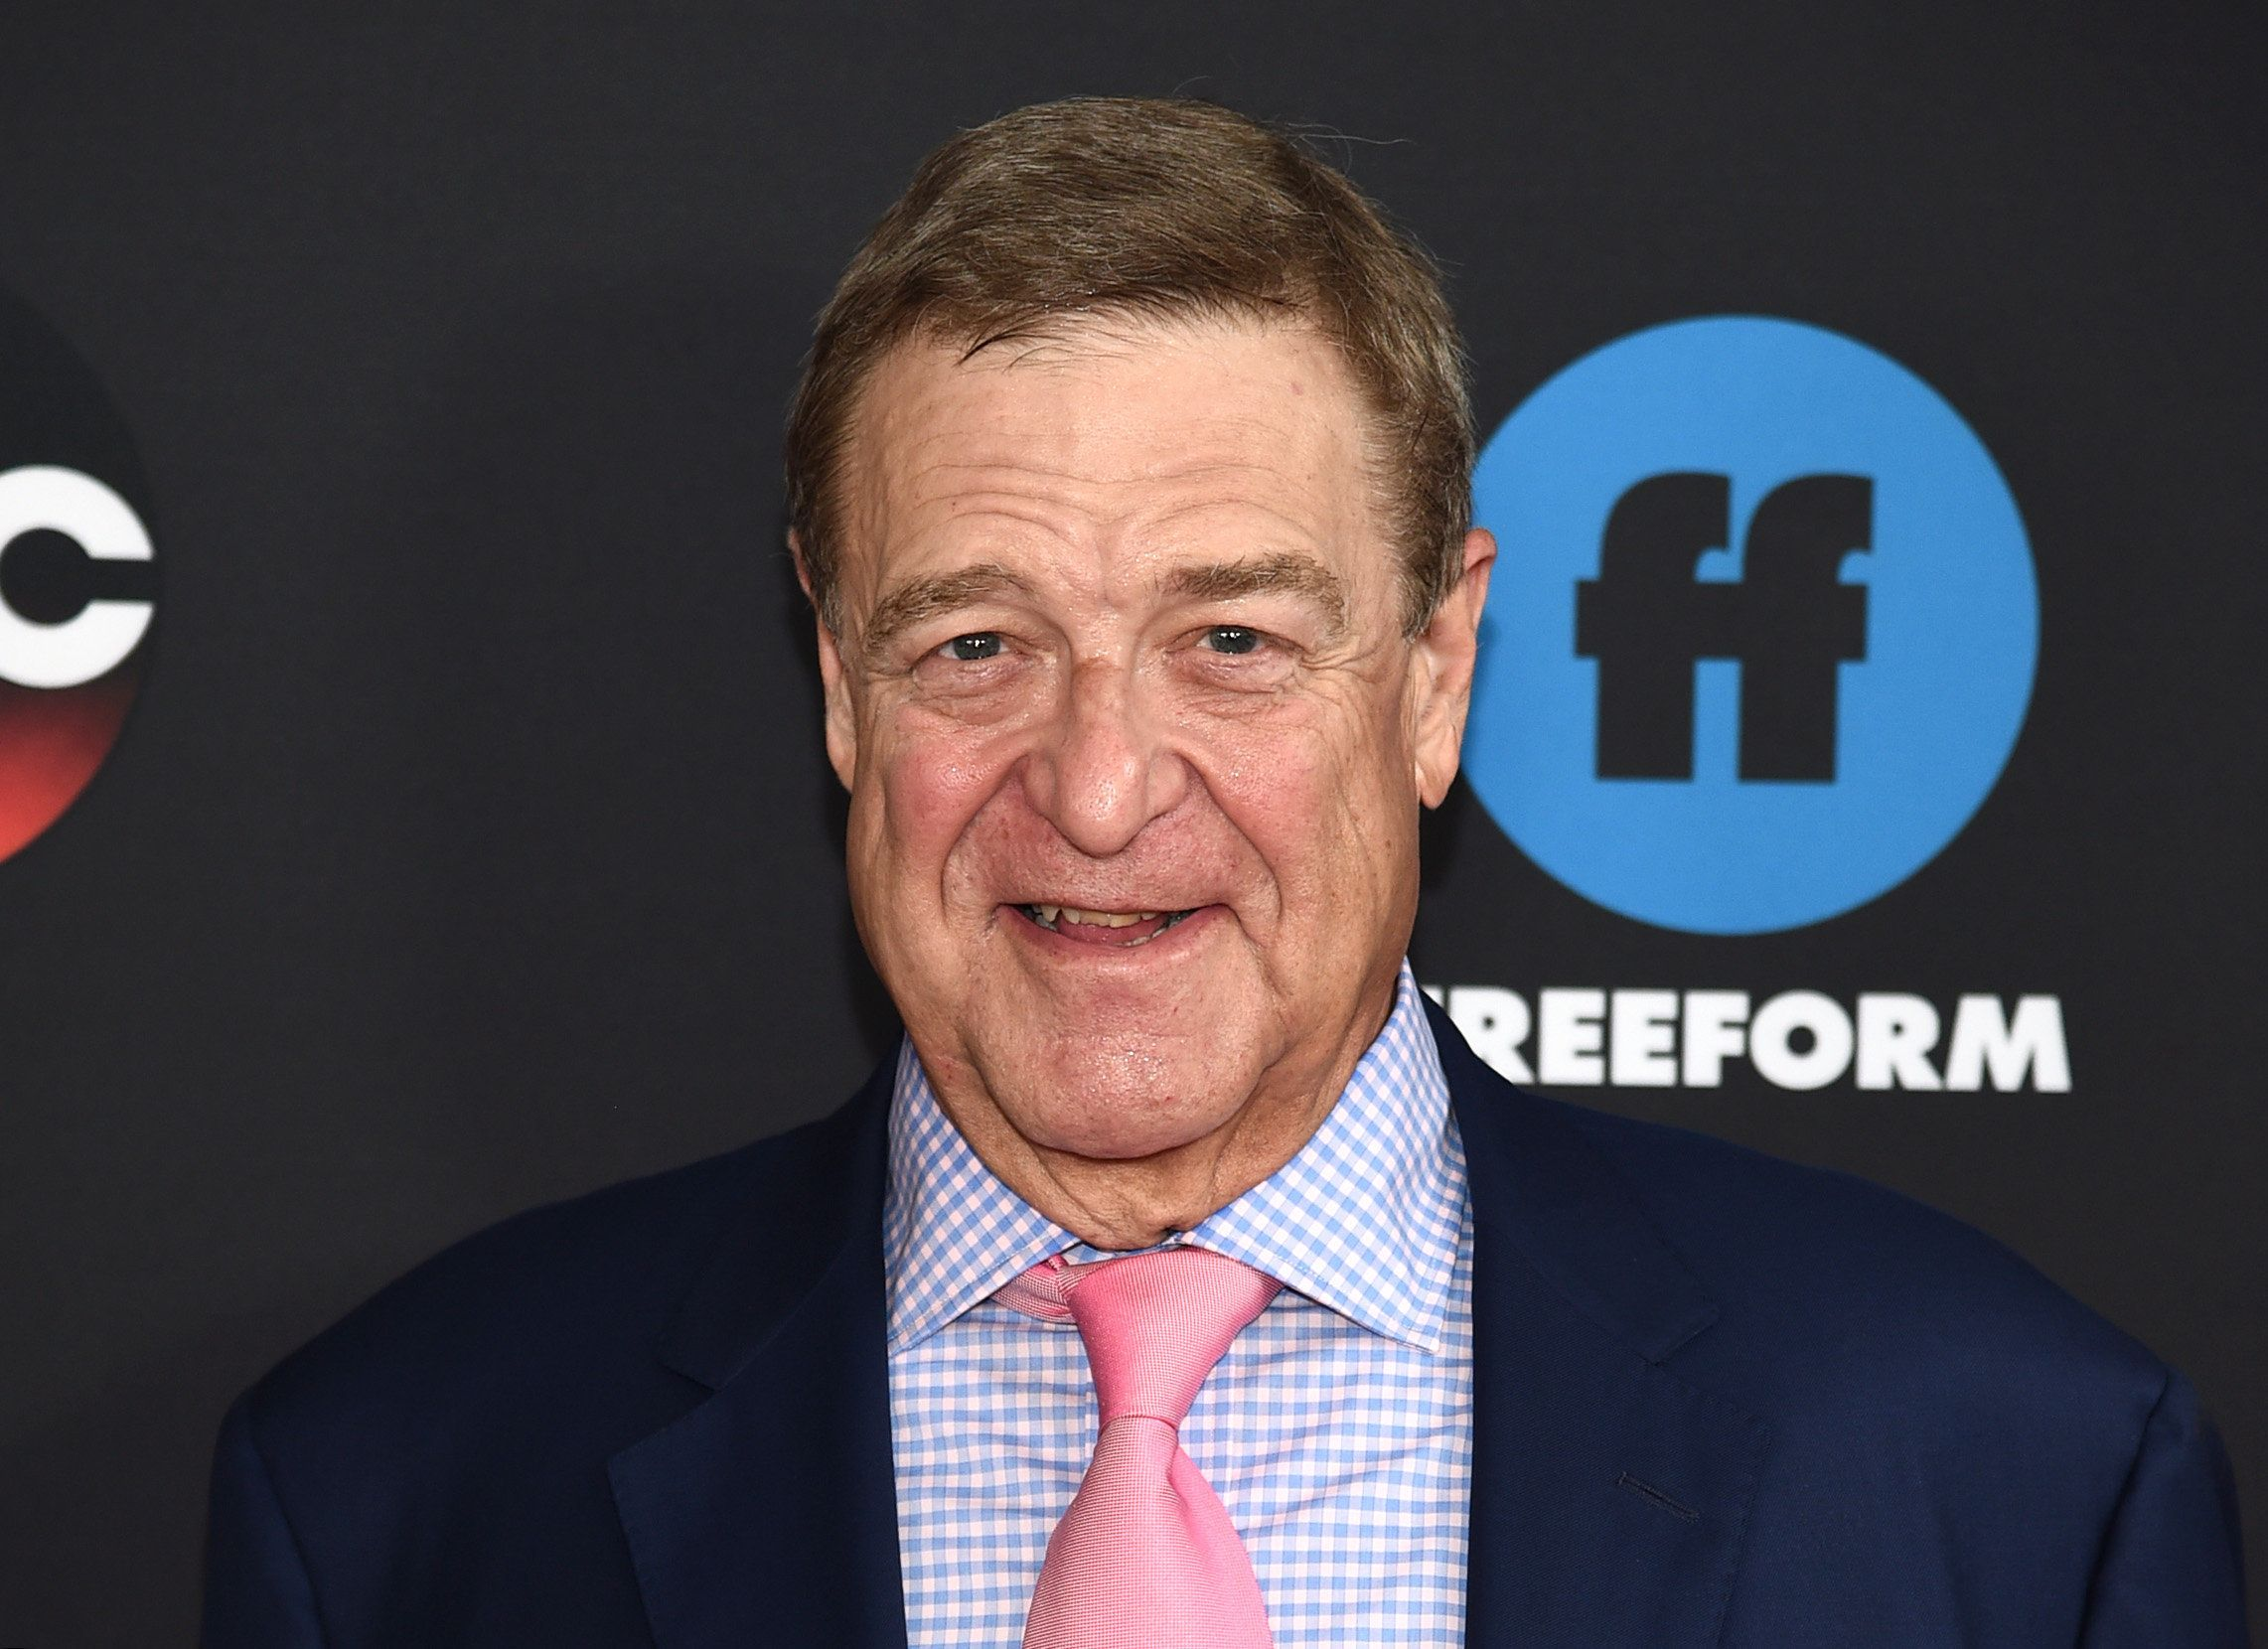 NEW YORK, NY - MAY 15:  Actor John Goodman of Roseanne attends during 2018 Disney, ABC, Freeform Upfront at Tavern On The Green on May 15, 2018 in New York City.  (Photo by Dimitrios Kambouris/Getty Images)